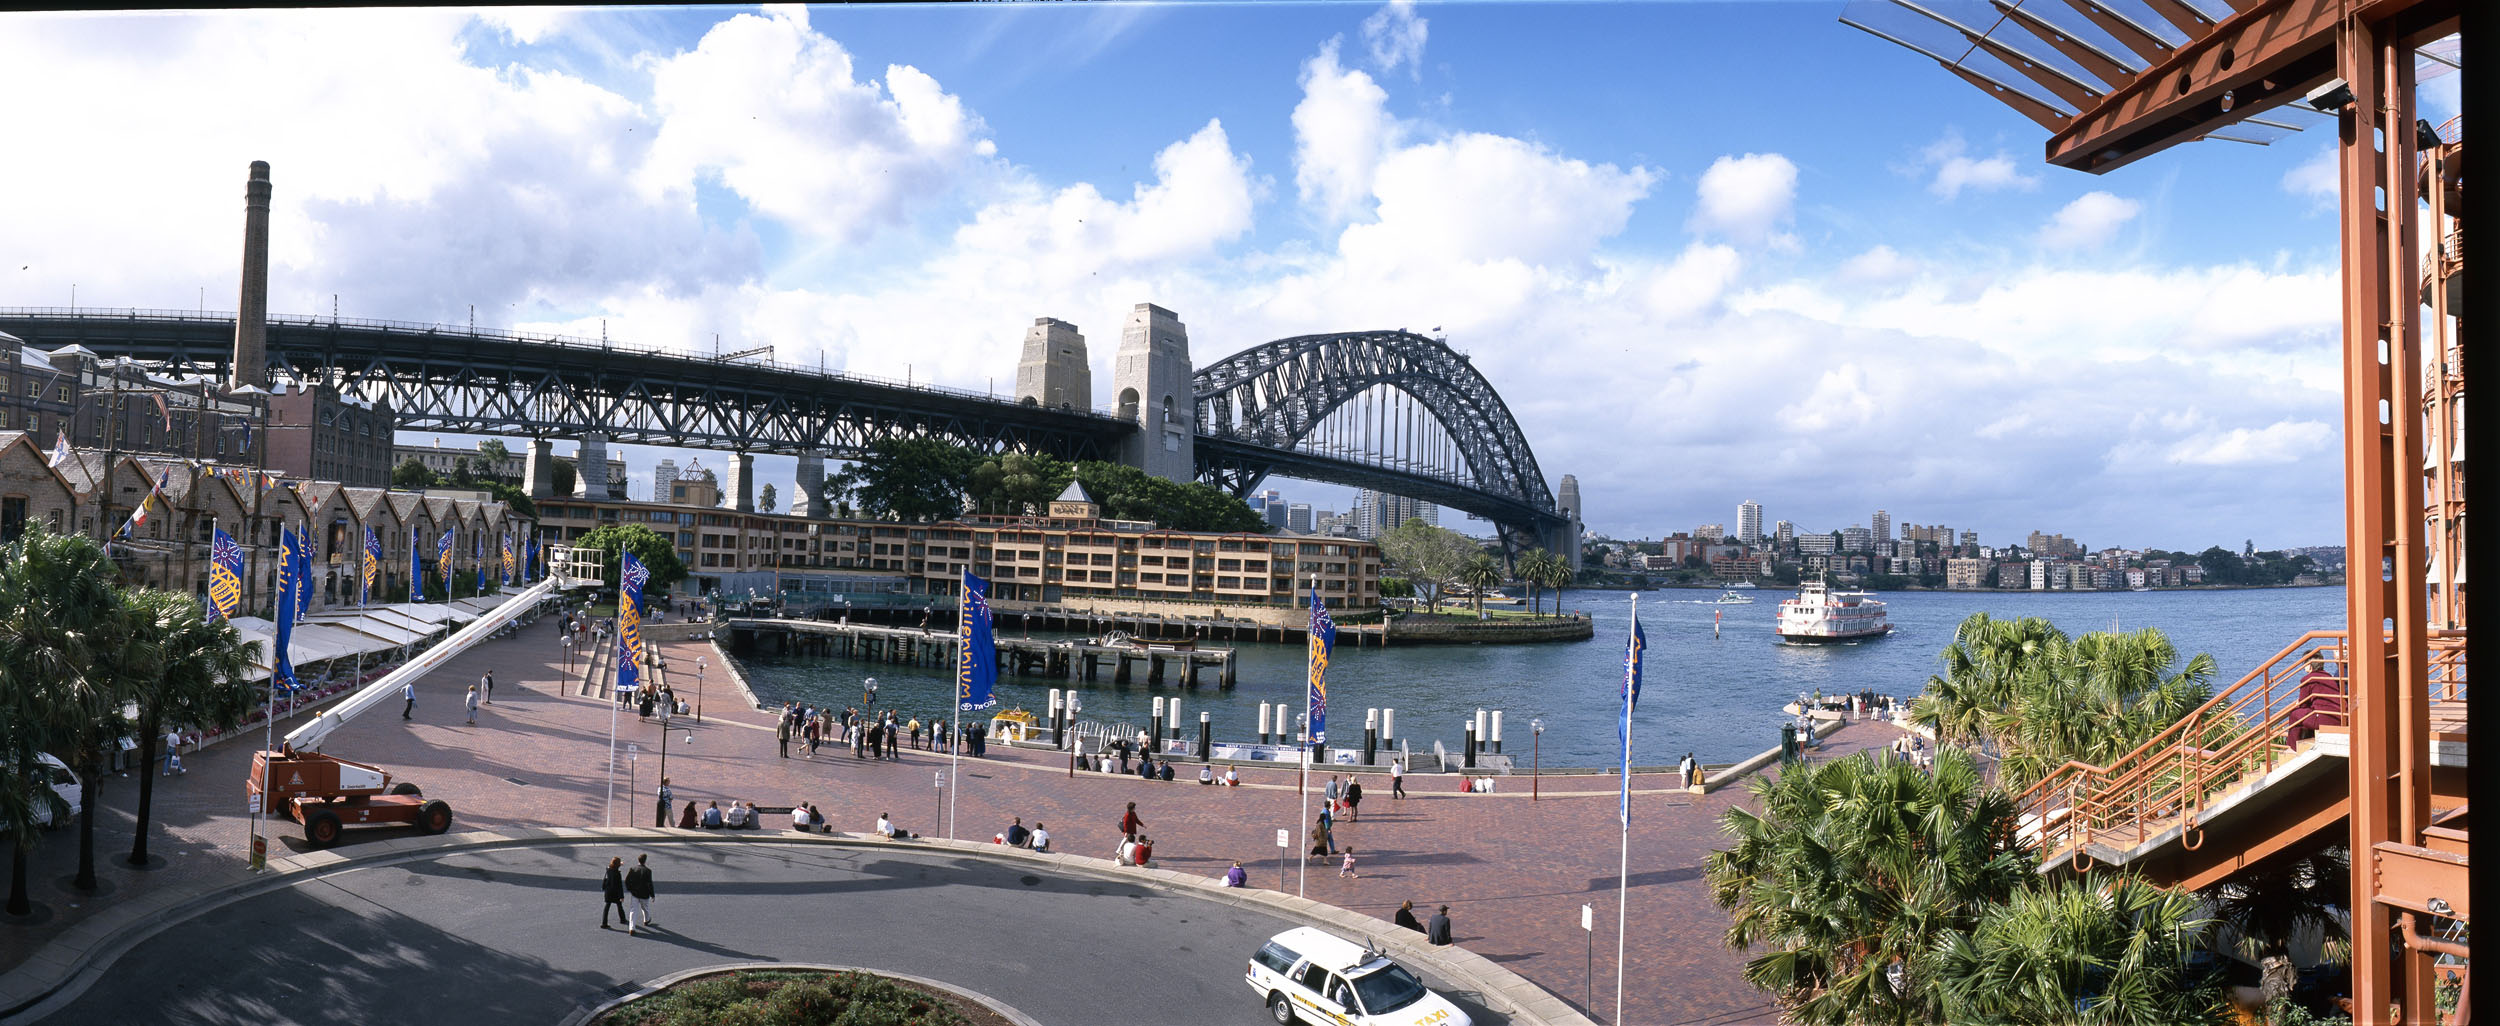 Australie Sydney Harbour Bridge